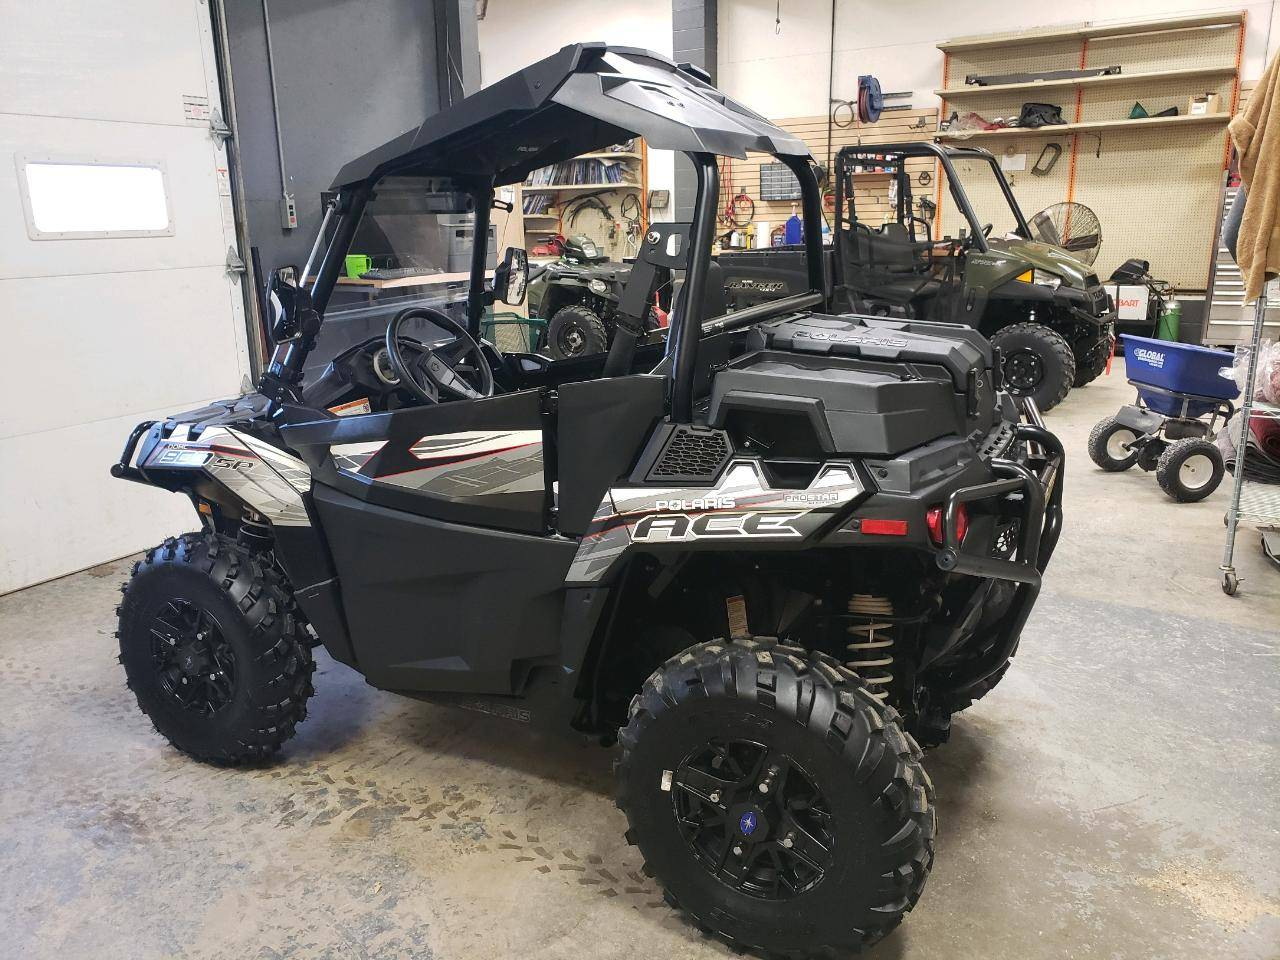 2016 Polaris ACE 900 SP in Beaver Falls, Pennsylvania - Photo 5